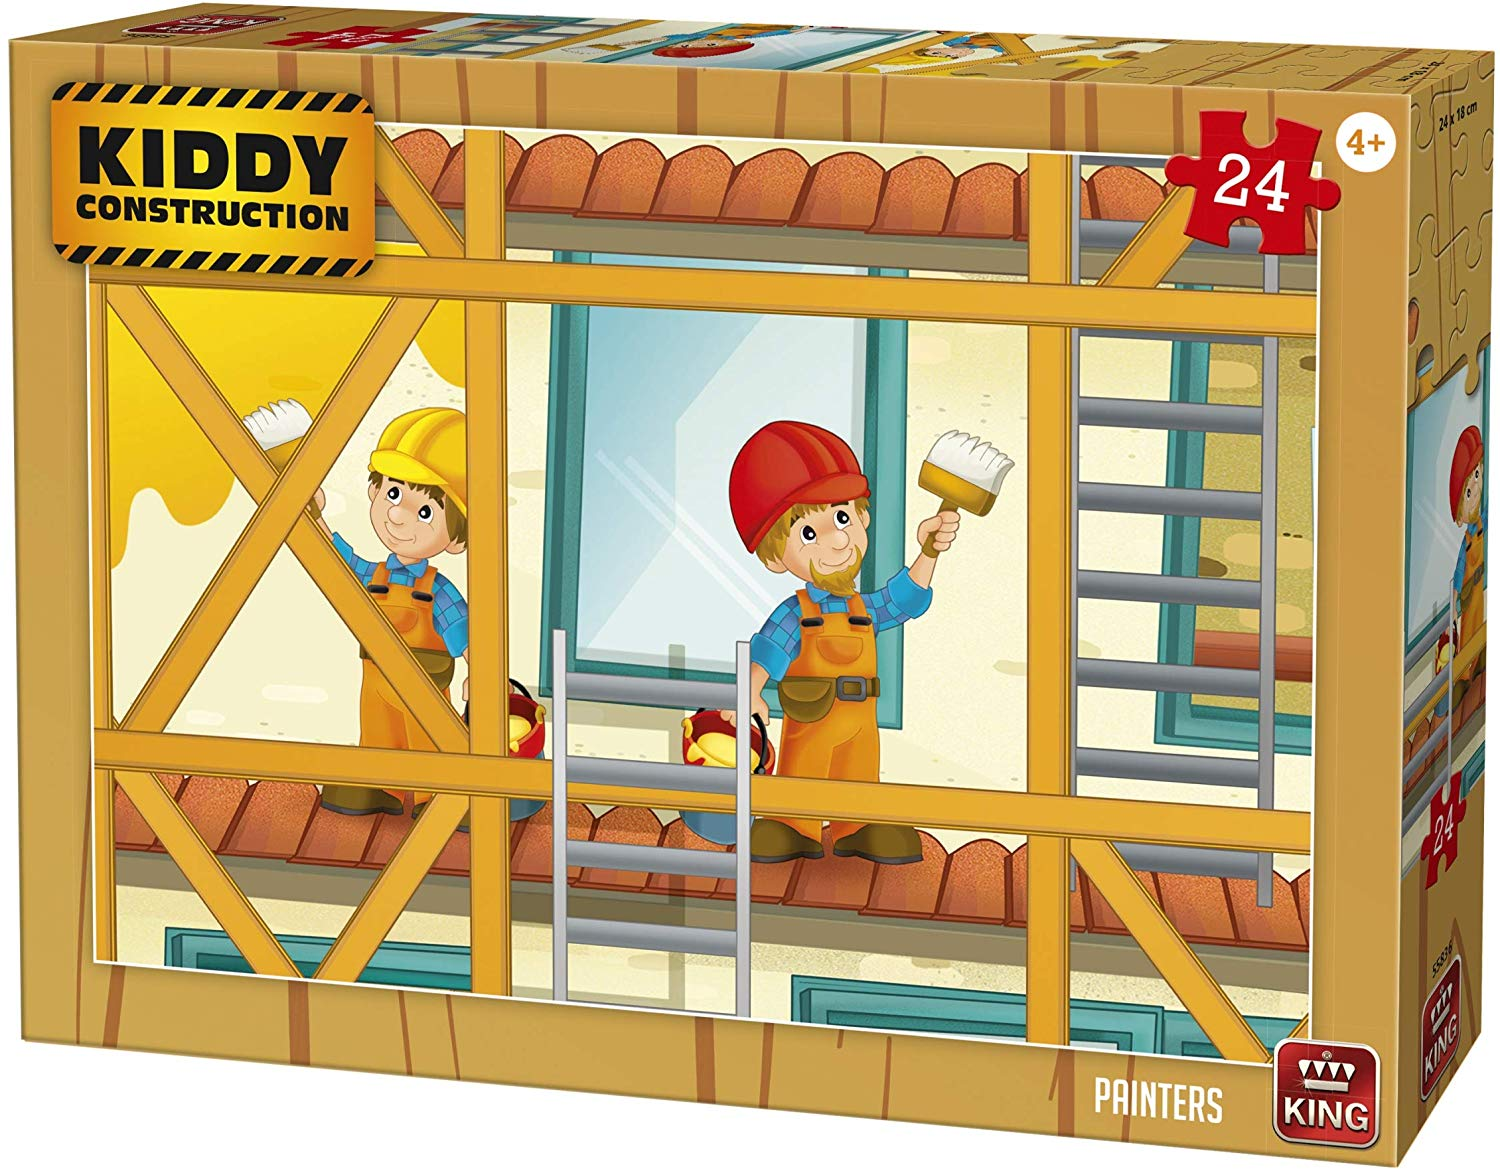 king-international-kiddy-construction-painters-24-teile-puzzle-king-puzzle-55836